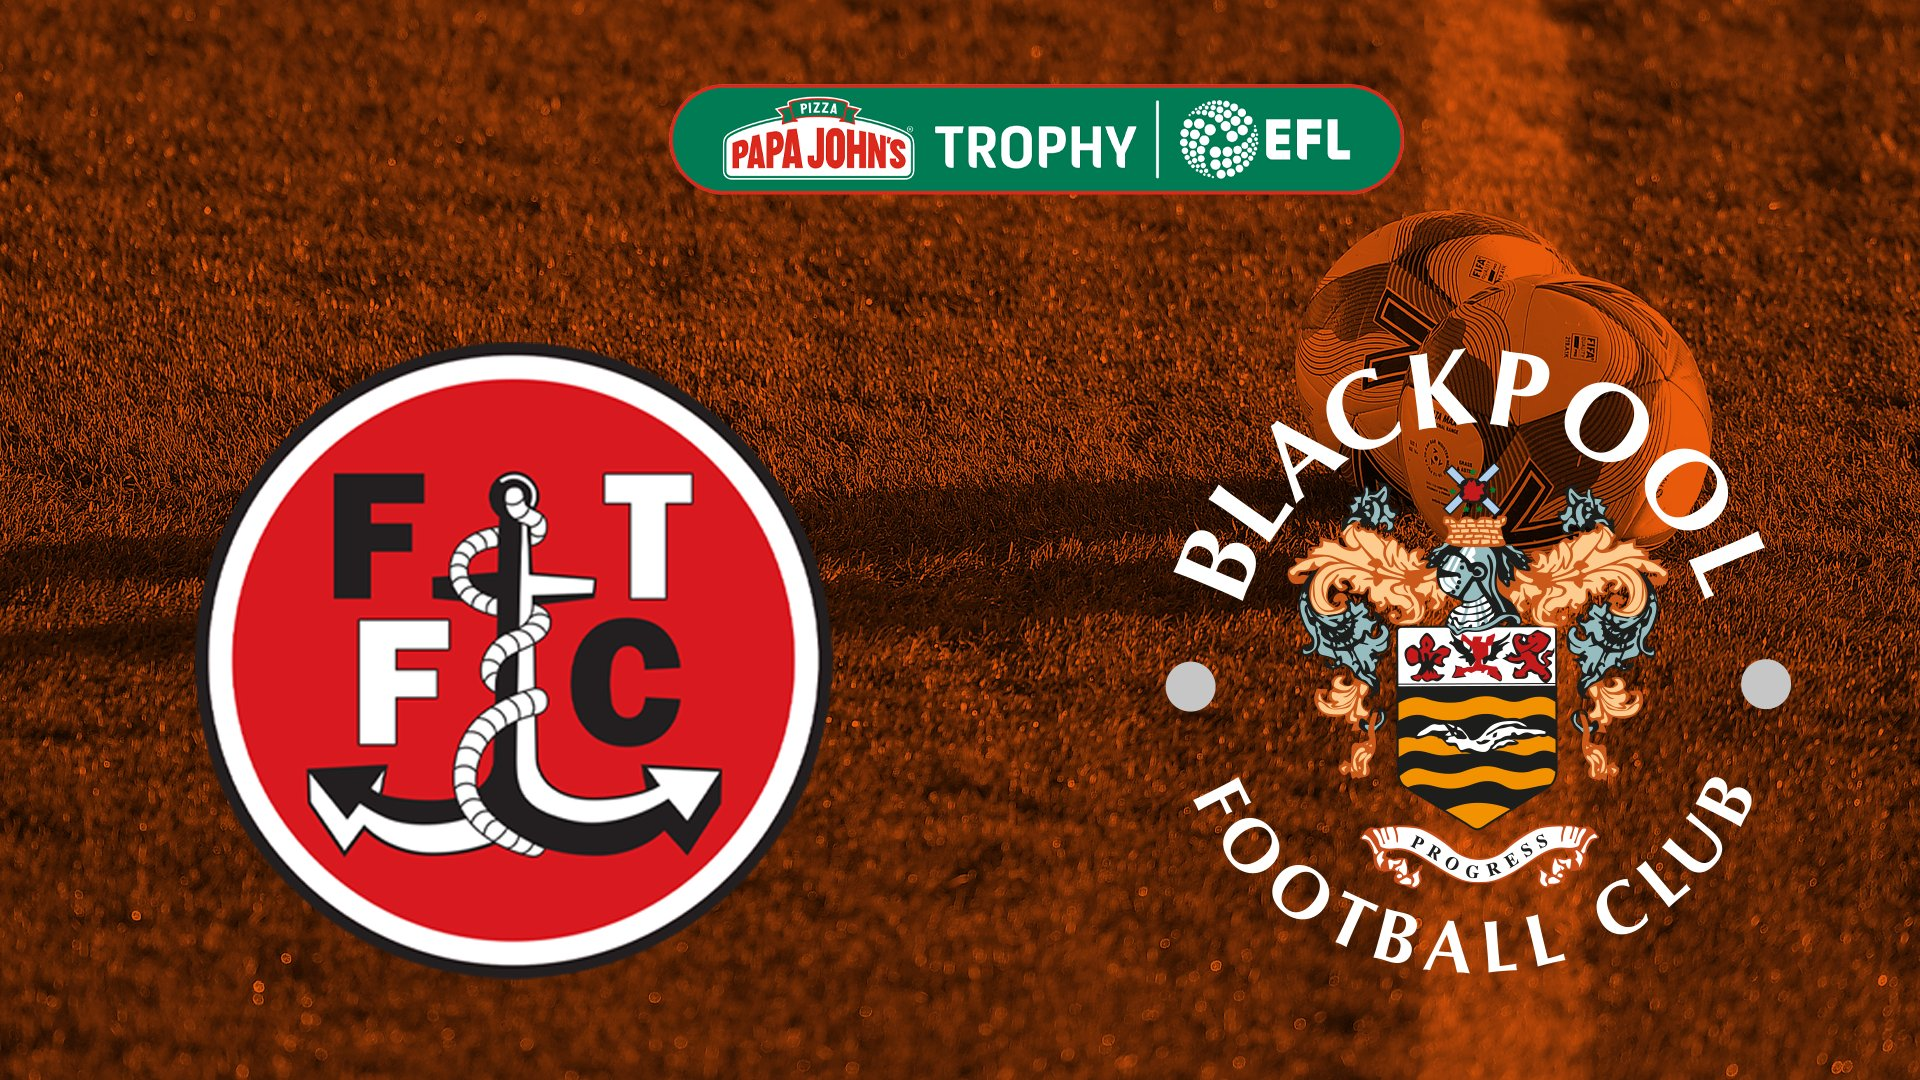 Blackpool Fc On Twitter 𝗠𝗮𝘁𝗰𝗵 𝗣𝗿𝗲𝘃𝗶𝗲𝘄 Fleetwood Town A The Seasiders Travel To Ftfc This Evening In The Second Round Of The Papajohnstrophy Https T Co Bh3xp7mcfy Https T Co Utrwibccyt